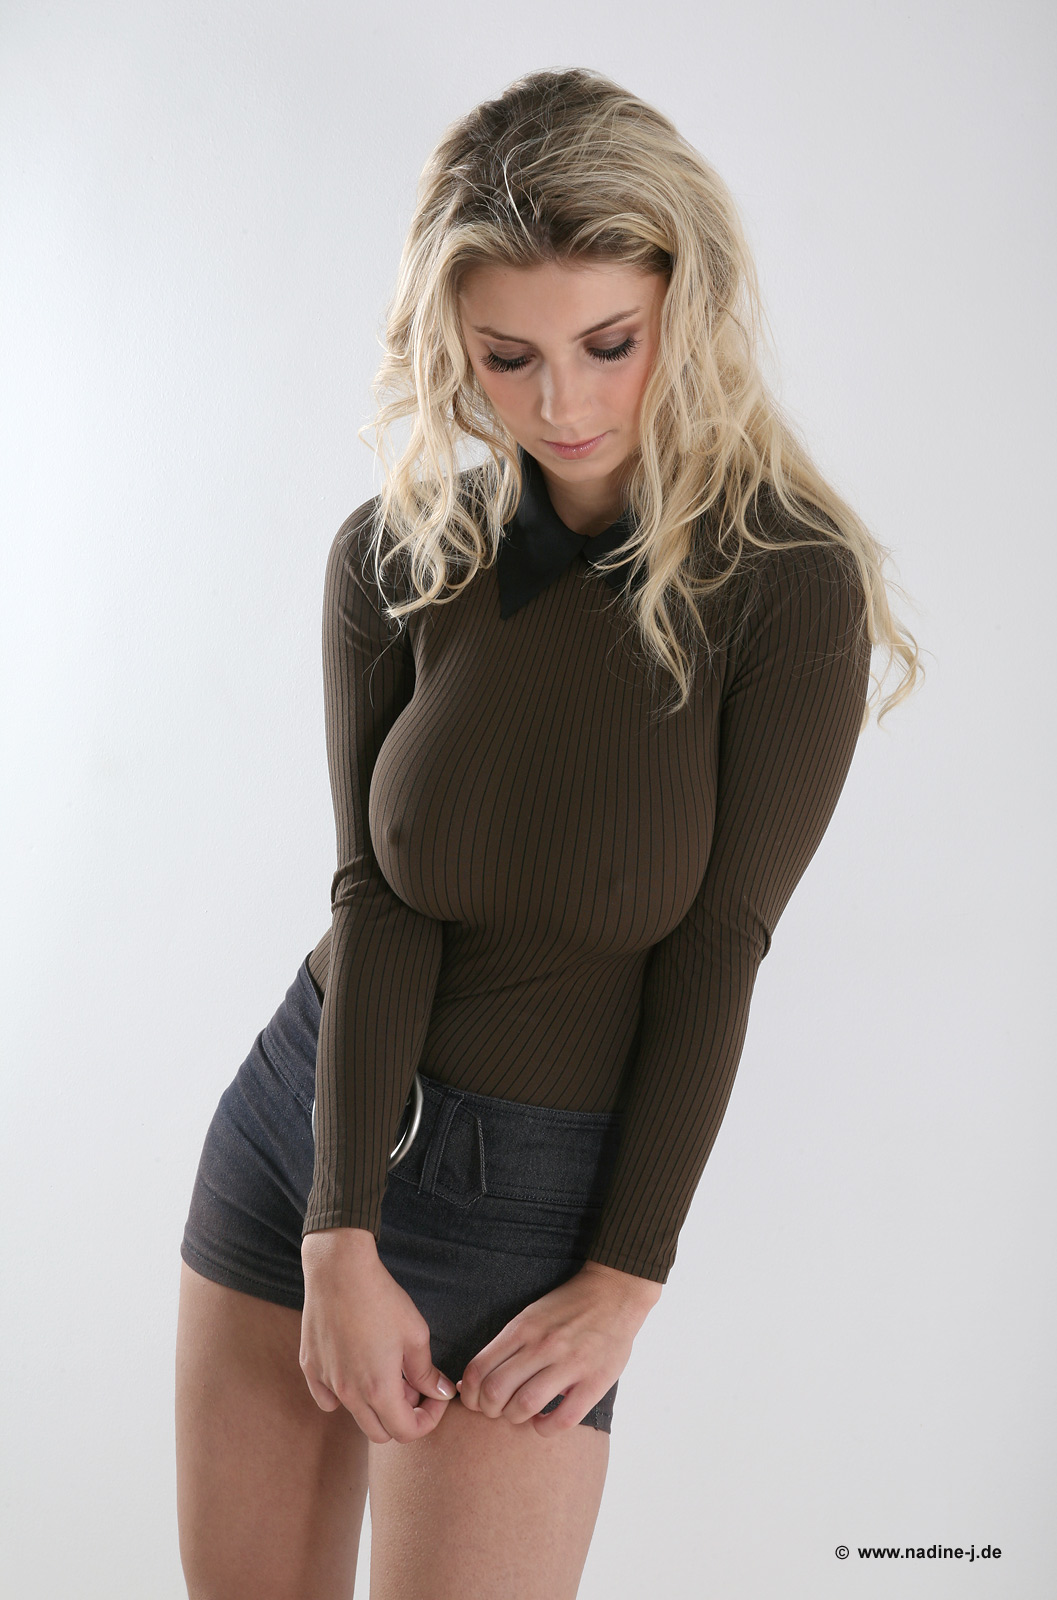 Girl in tight sweater getting fucked Tight Sweater Porn Pic Eporner